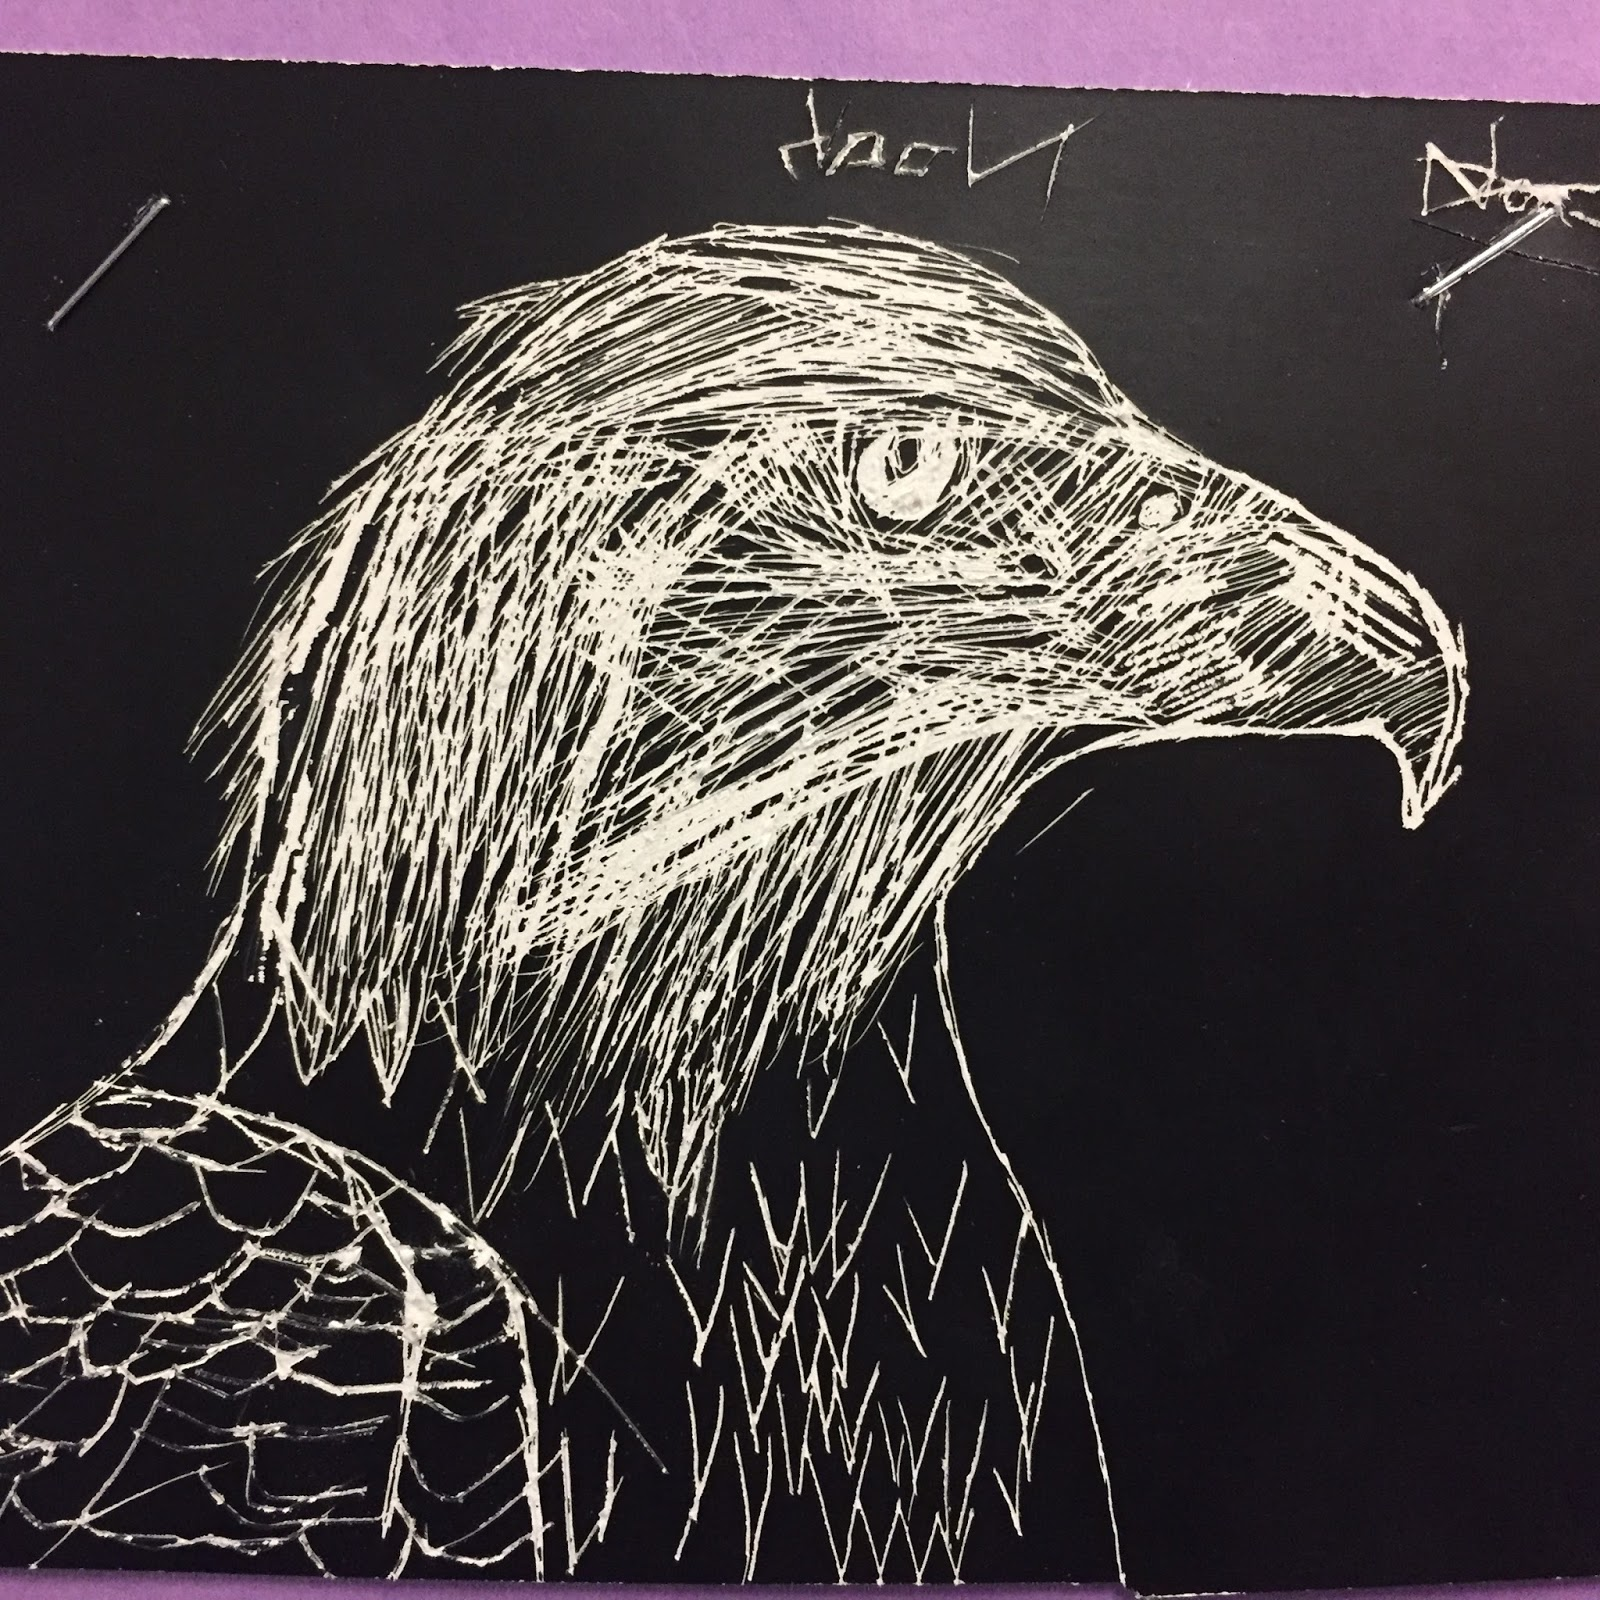 Students Demonstrated Using Of A Variety Line To Show Value And Texture In Their Scratch Art Designs